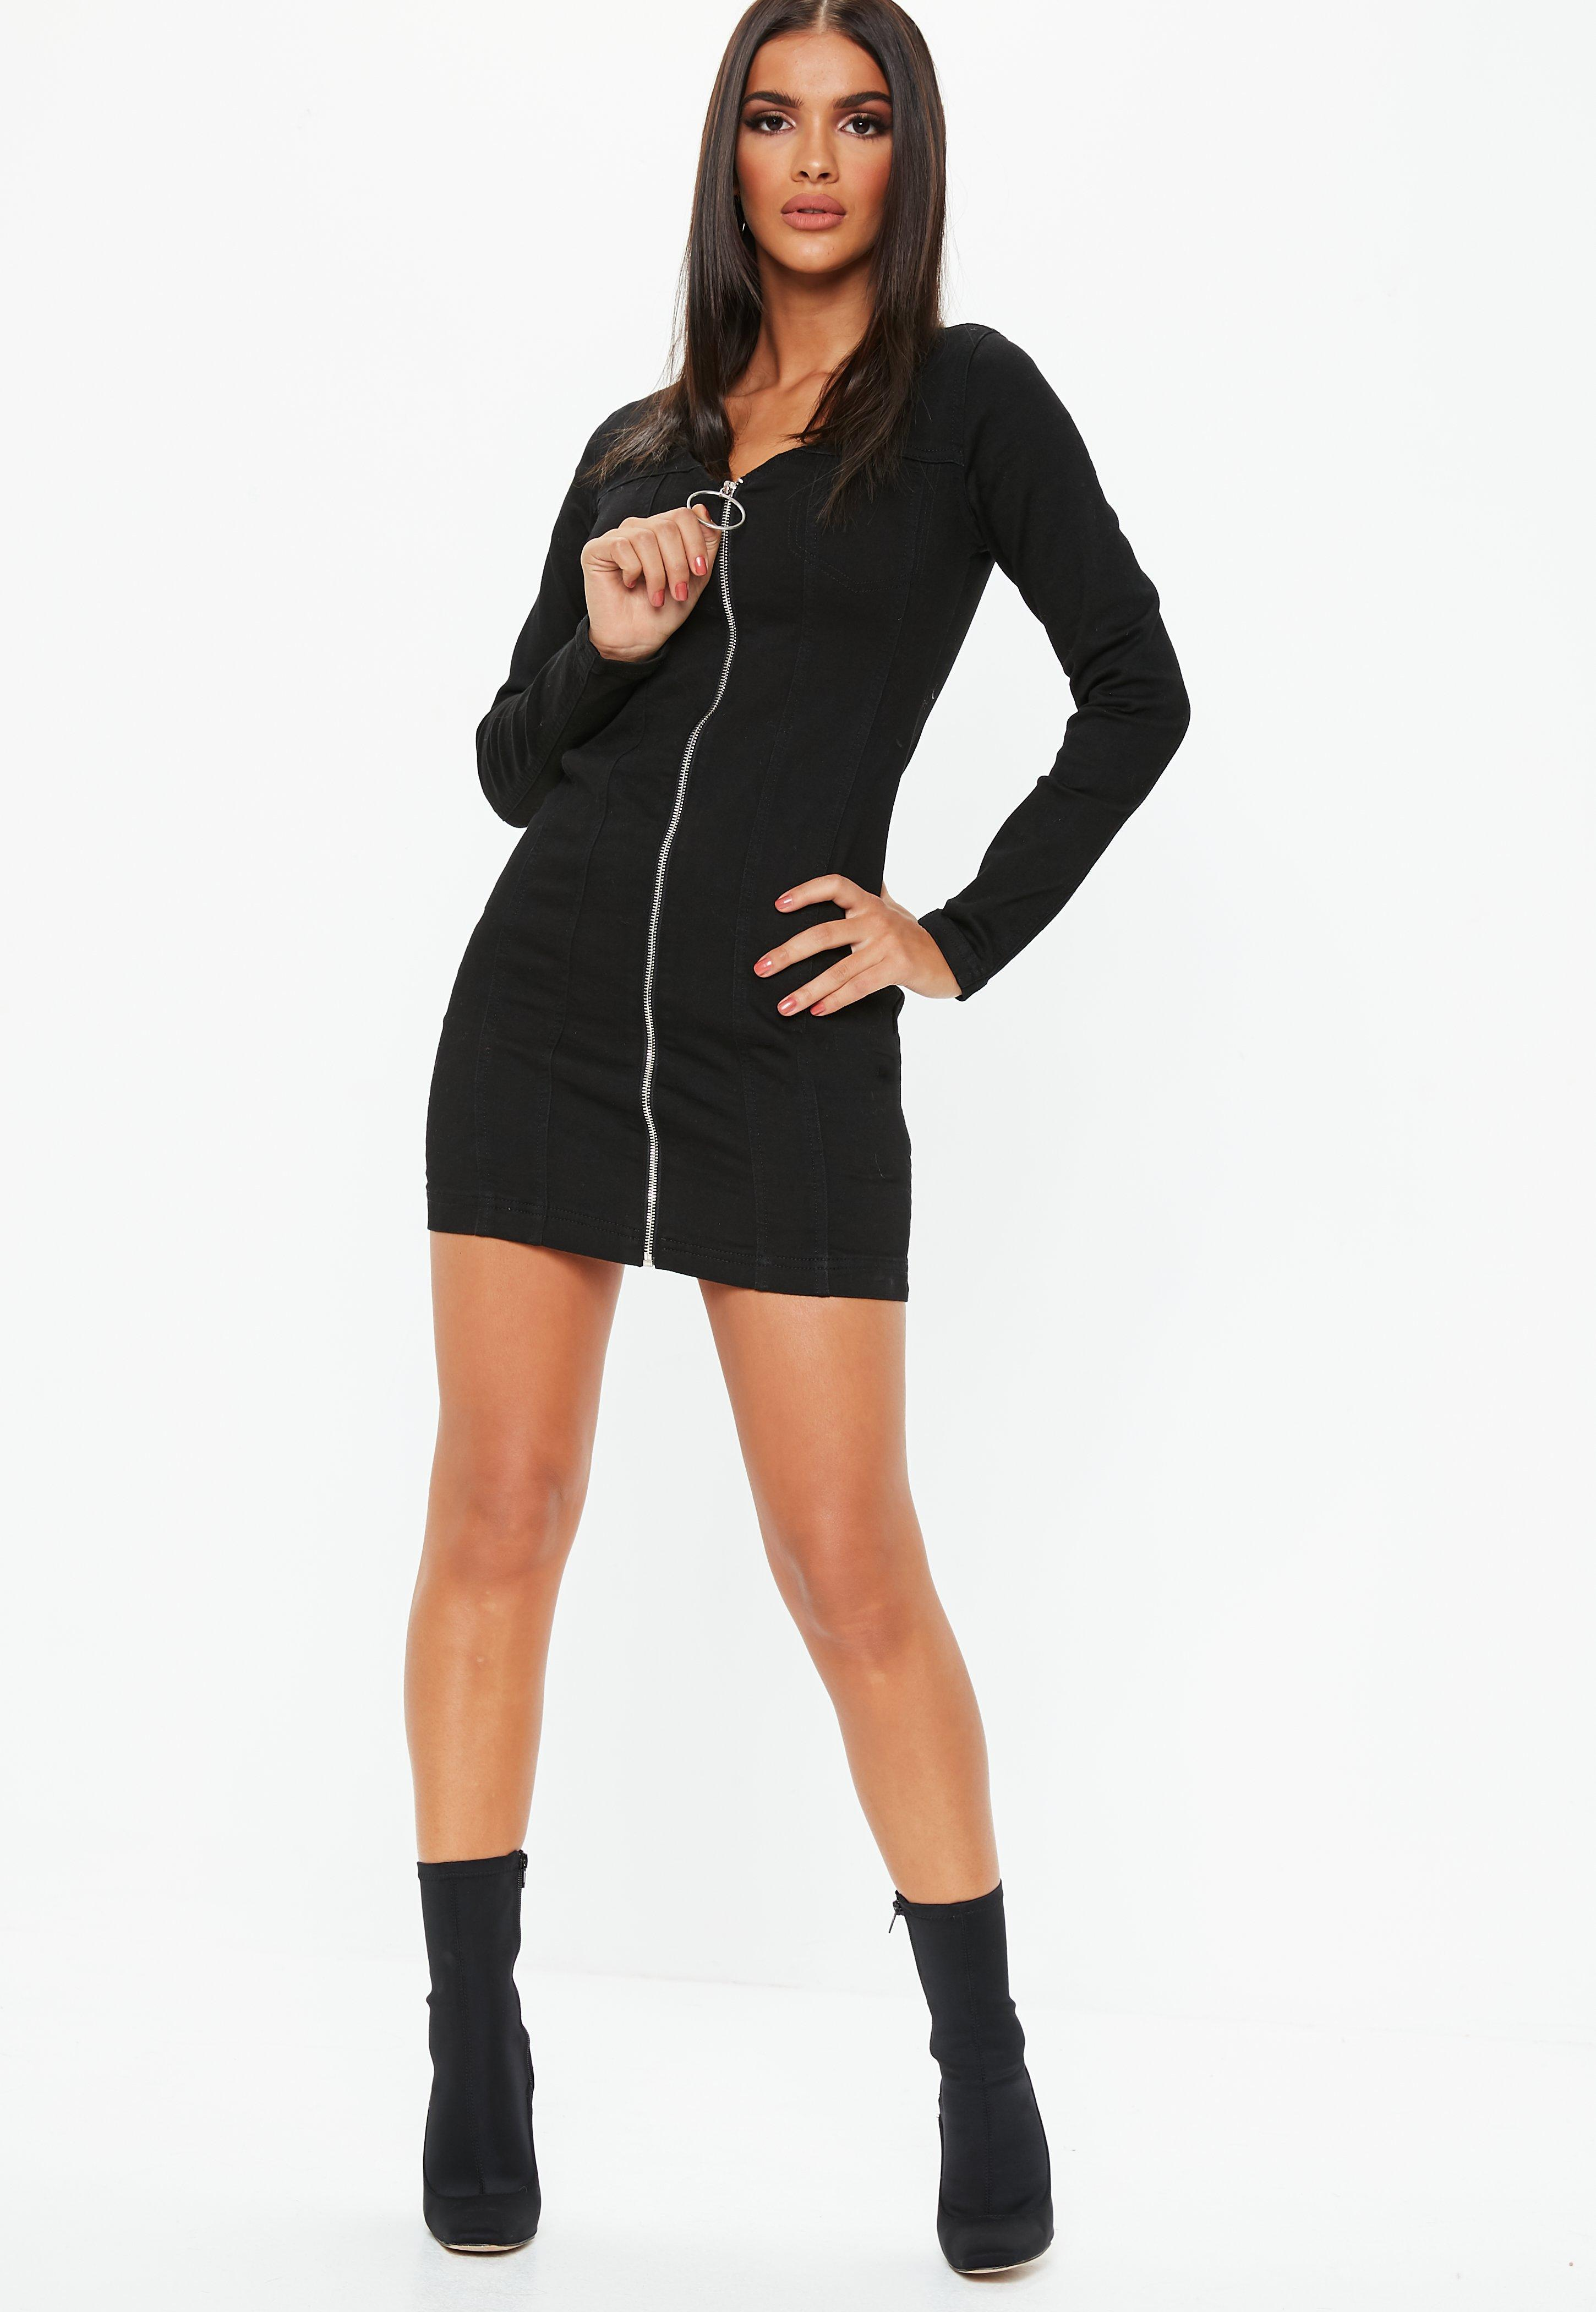 7d60ad98cb Missguided - Black Denim Zip Through Long Sleeve Fitted Mini Dress - Lyst.  View fullscreen